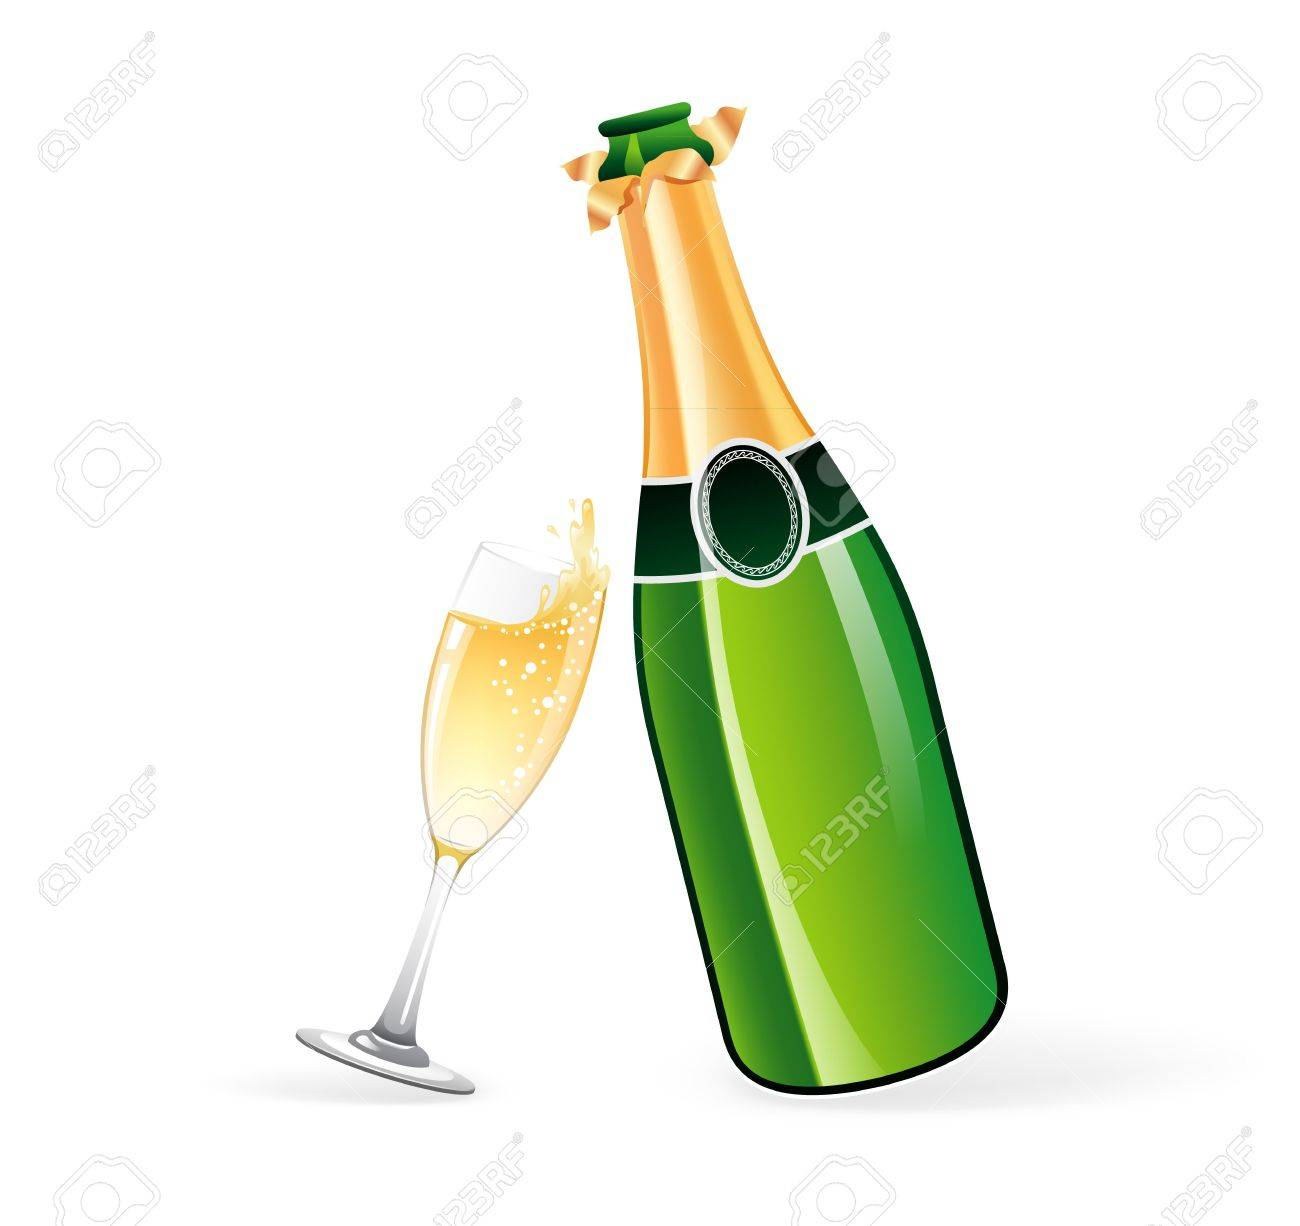 illustration of champagne bottle and glass royalty free cliparts rh 123rf com champagne bottle clipart free champagne bottle clipart black and white